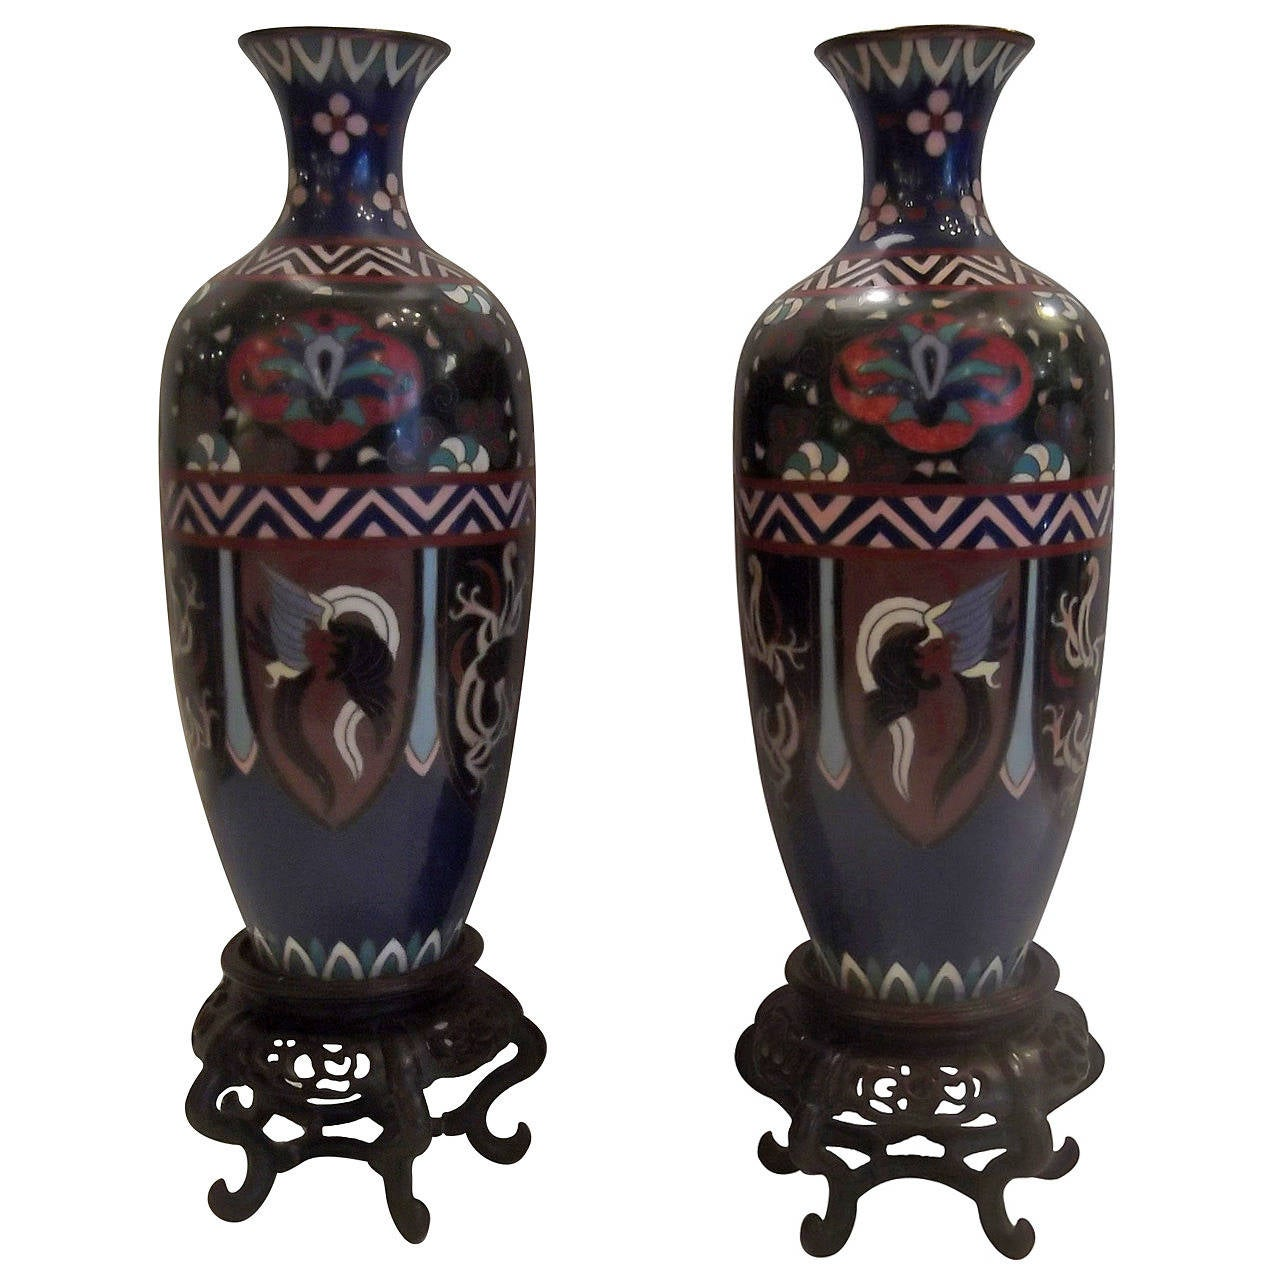 Pair of meiji period japanese cloisonne vases with rosewood stands pair of meiji period japanese cloisonne vases with rosewood stands for sale reviewsmspy